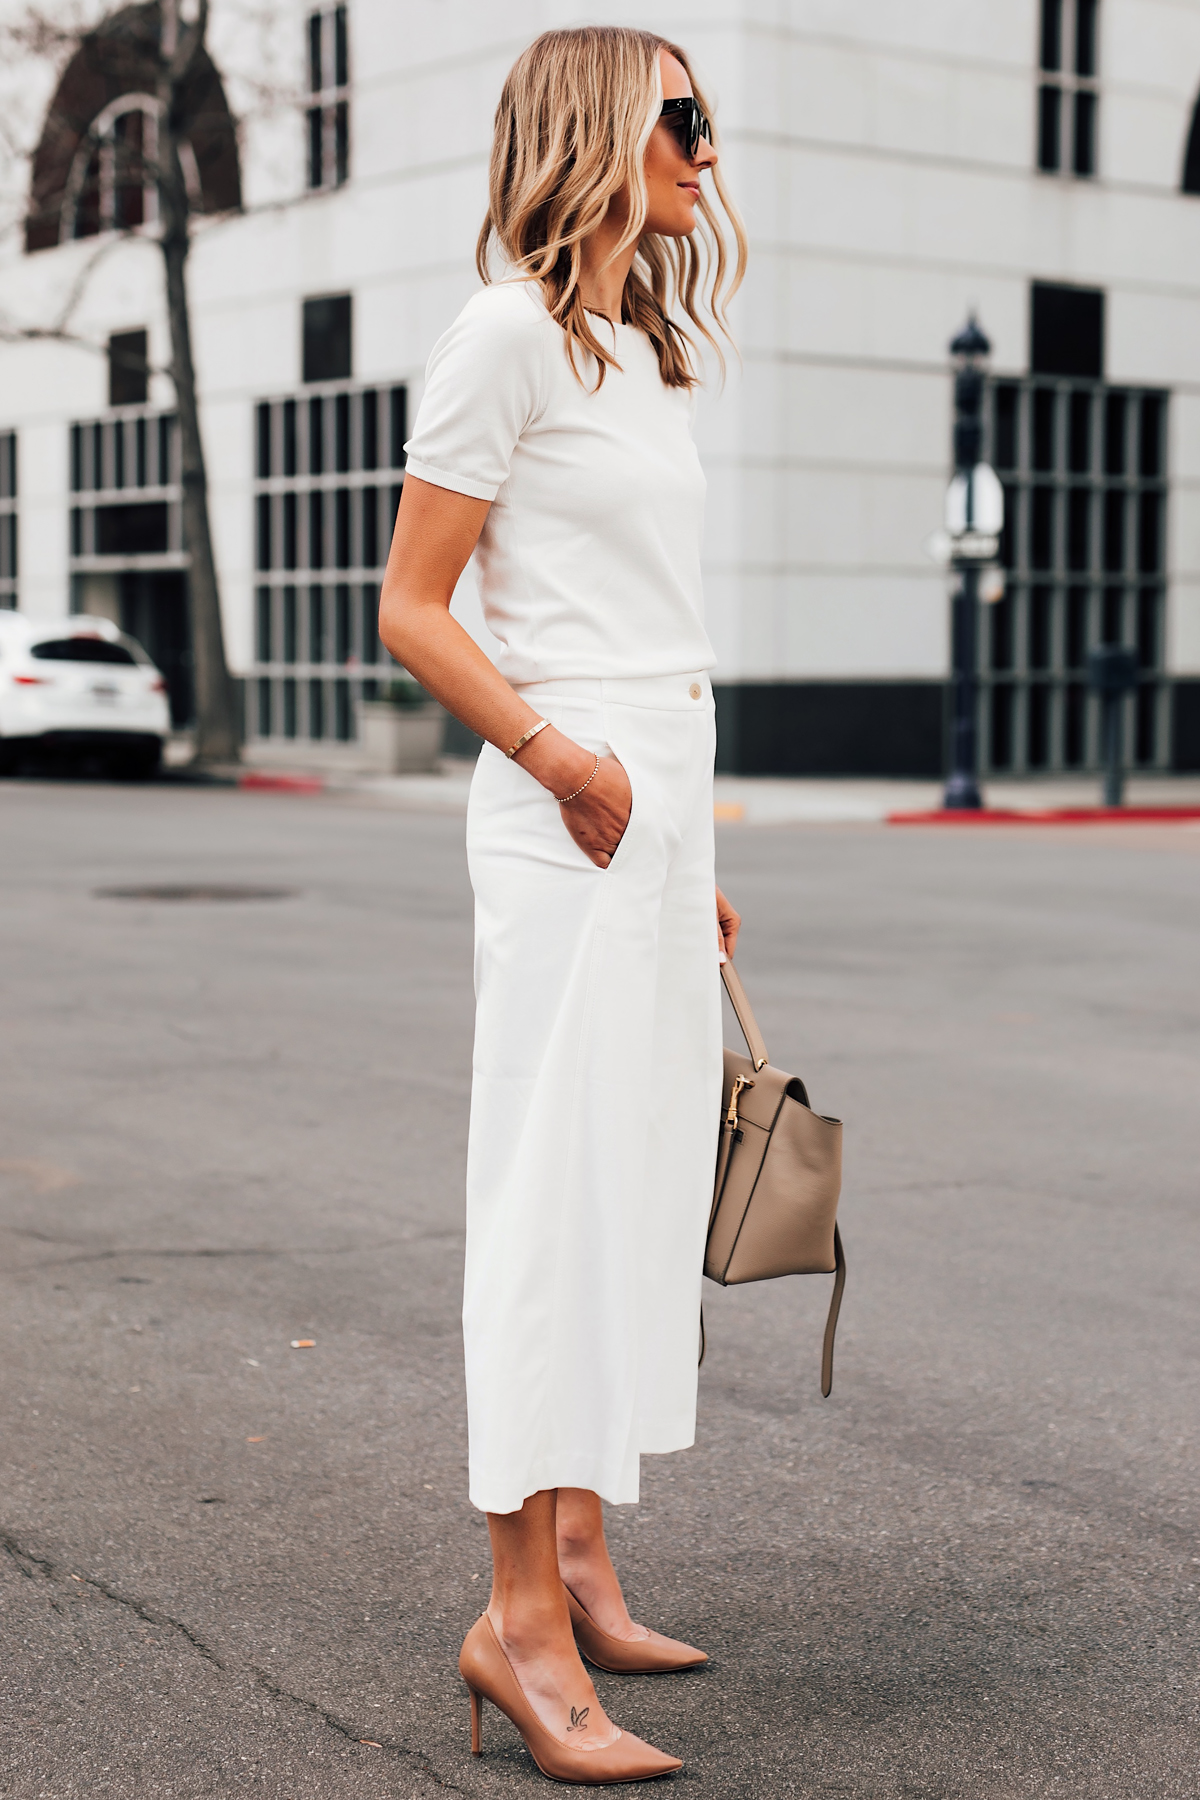 Blonde Woman Wearing Ann Taylor White Short Sleeve Sweater Ann Taylor White Wide Leg Cropped Pants Nude Pumps Fashion Jackson San Diego Fashion Blogger Street Style